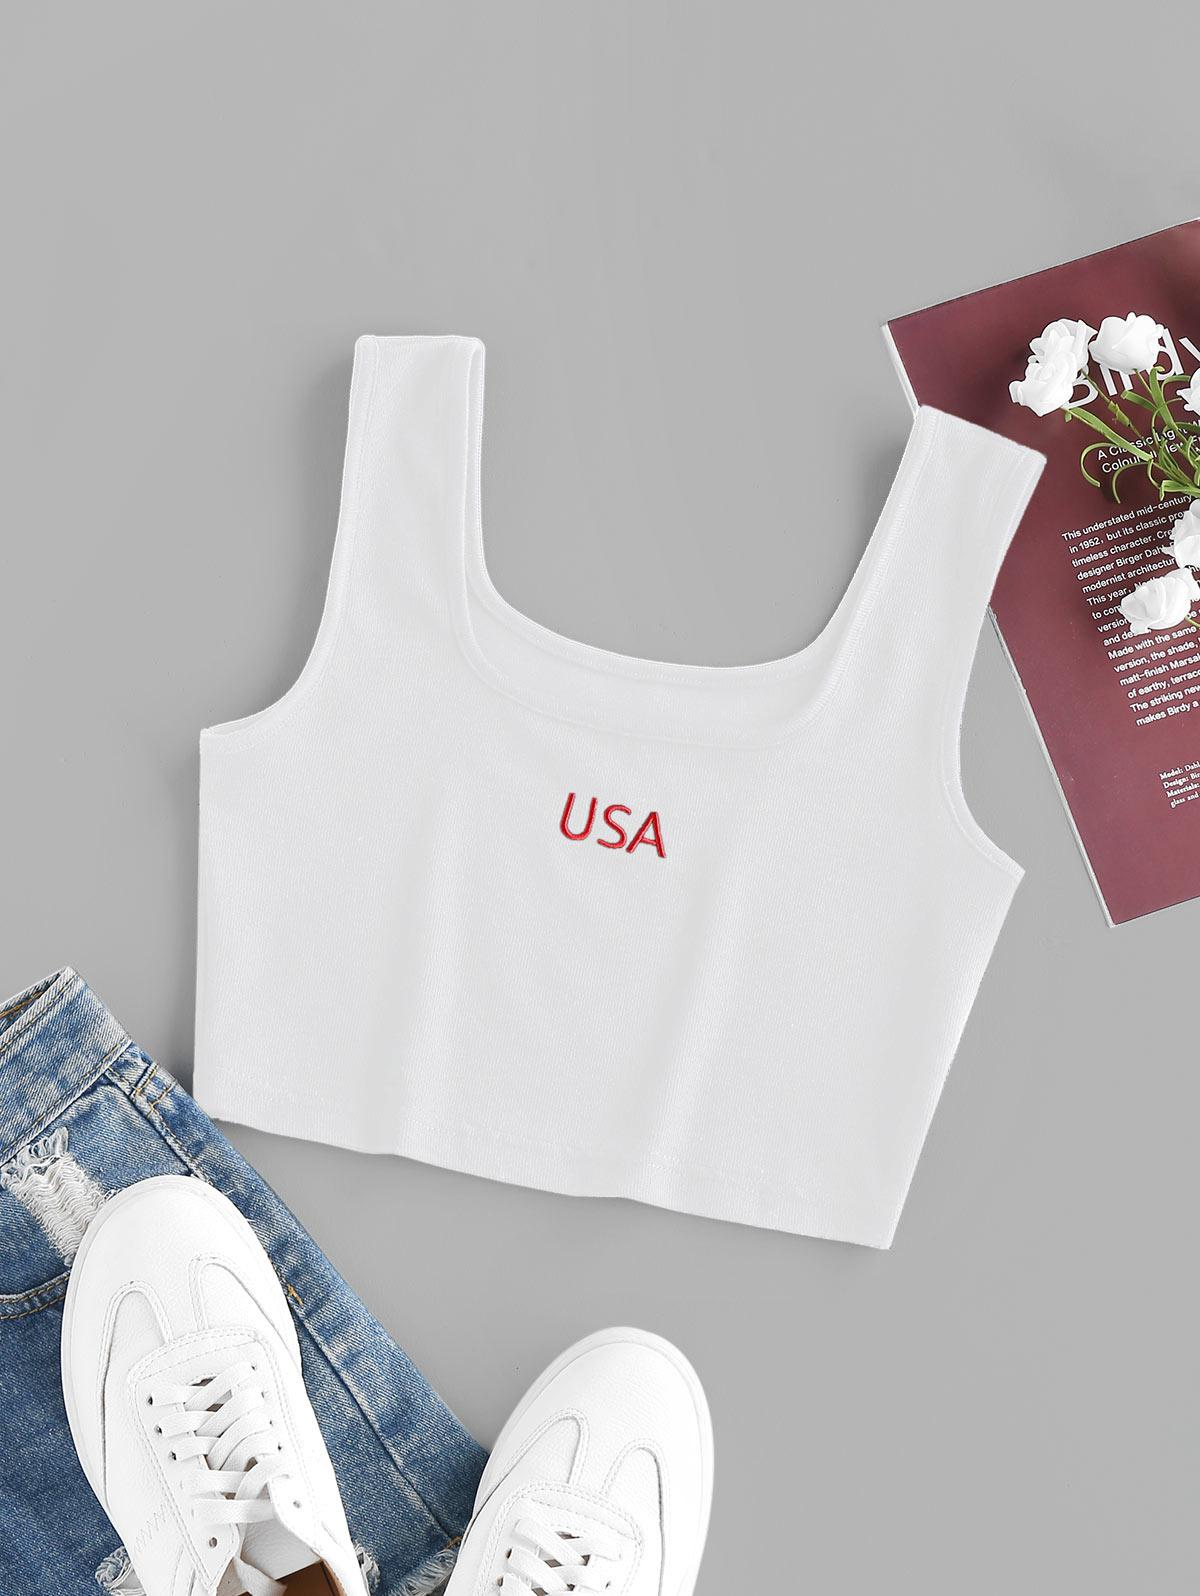 ZAFUL USA Embroidered Ribbed Crop Tank Top